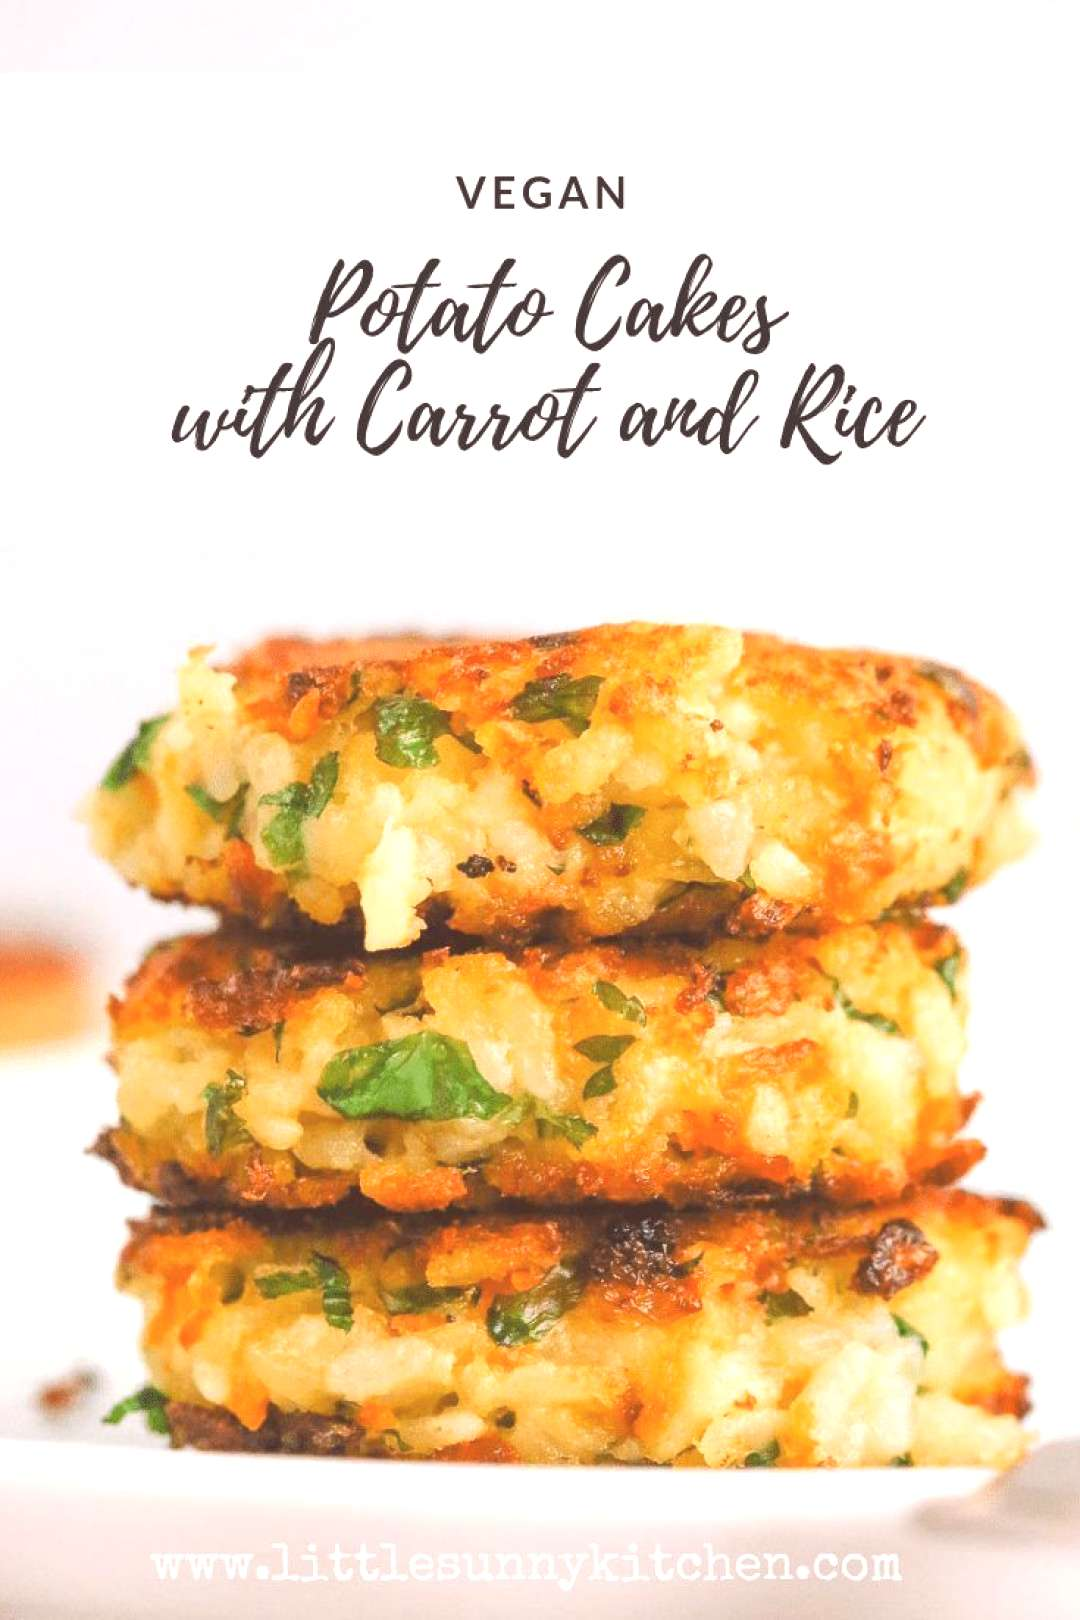 Vegan Potato Cakes with Carrot and Rice#cakes